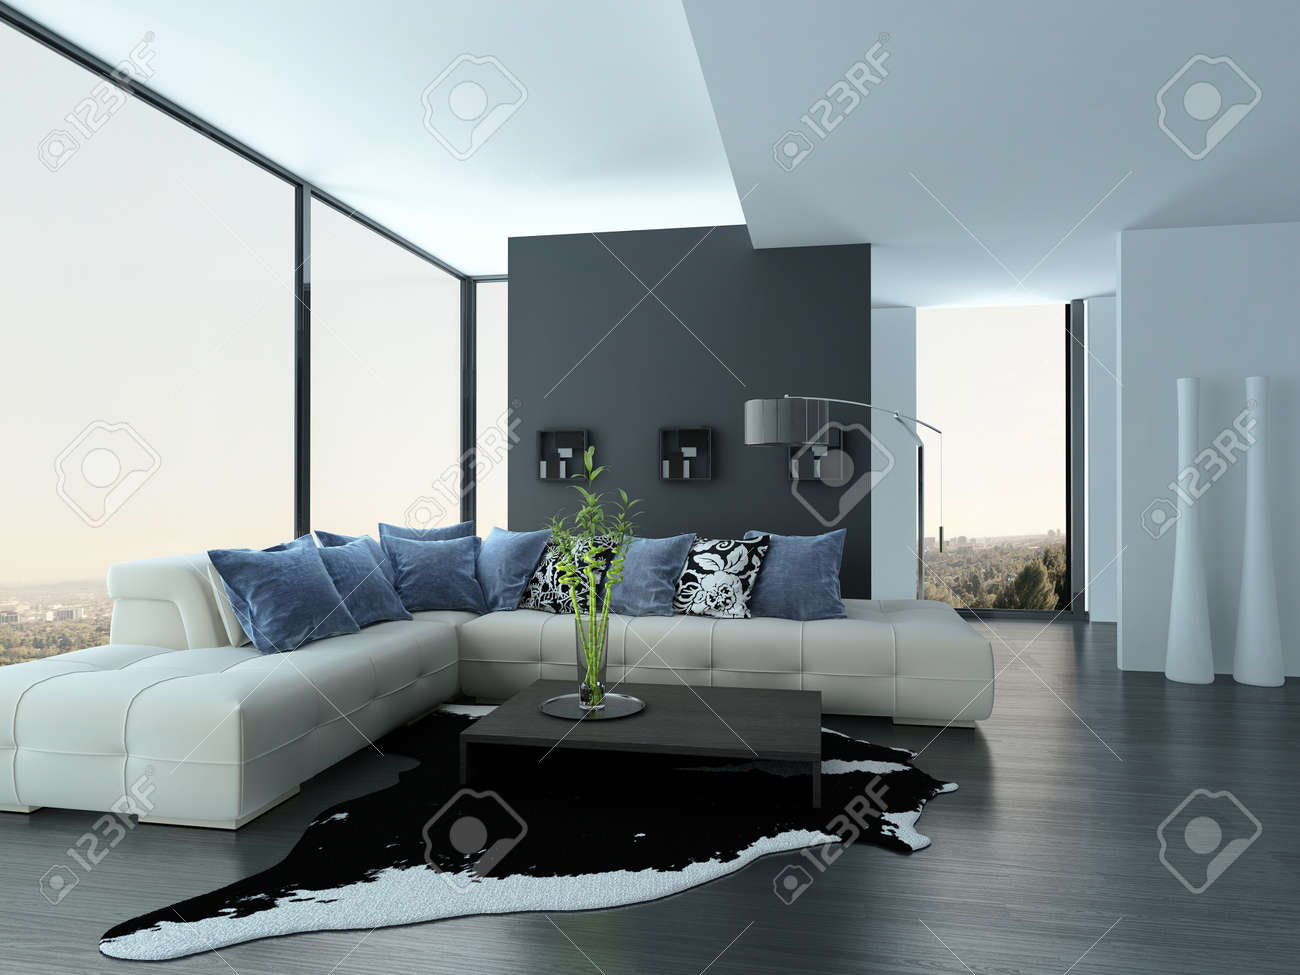 white couch living room. Modern living room interior with white couch blue pillows Stock Photo  29085564 Living Room Interior With White Couch Blue Pillows